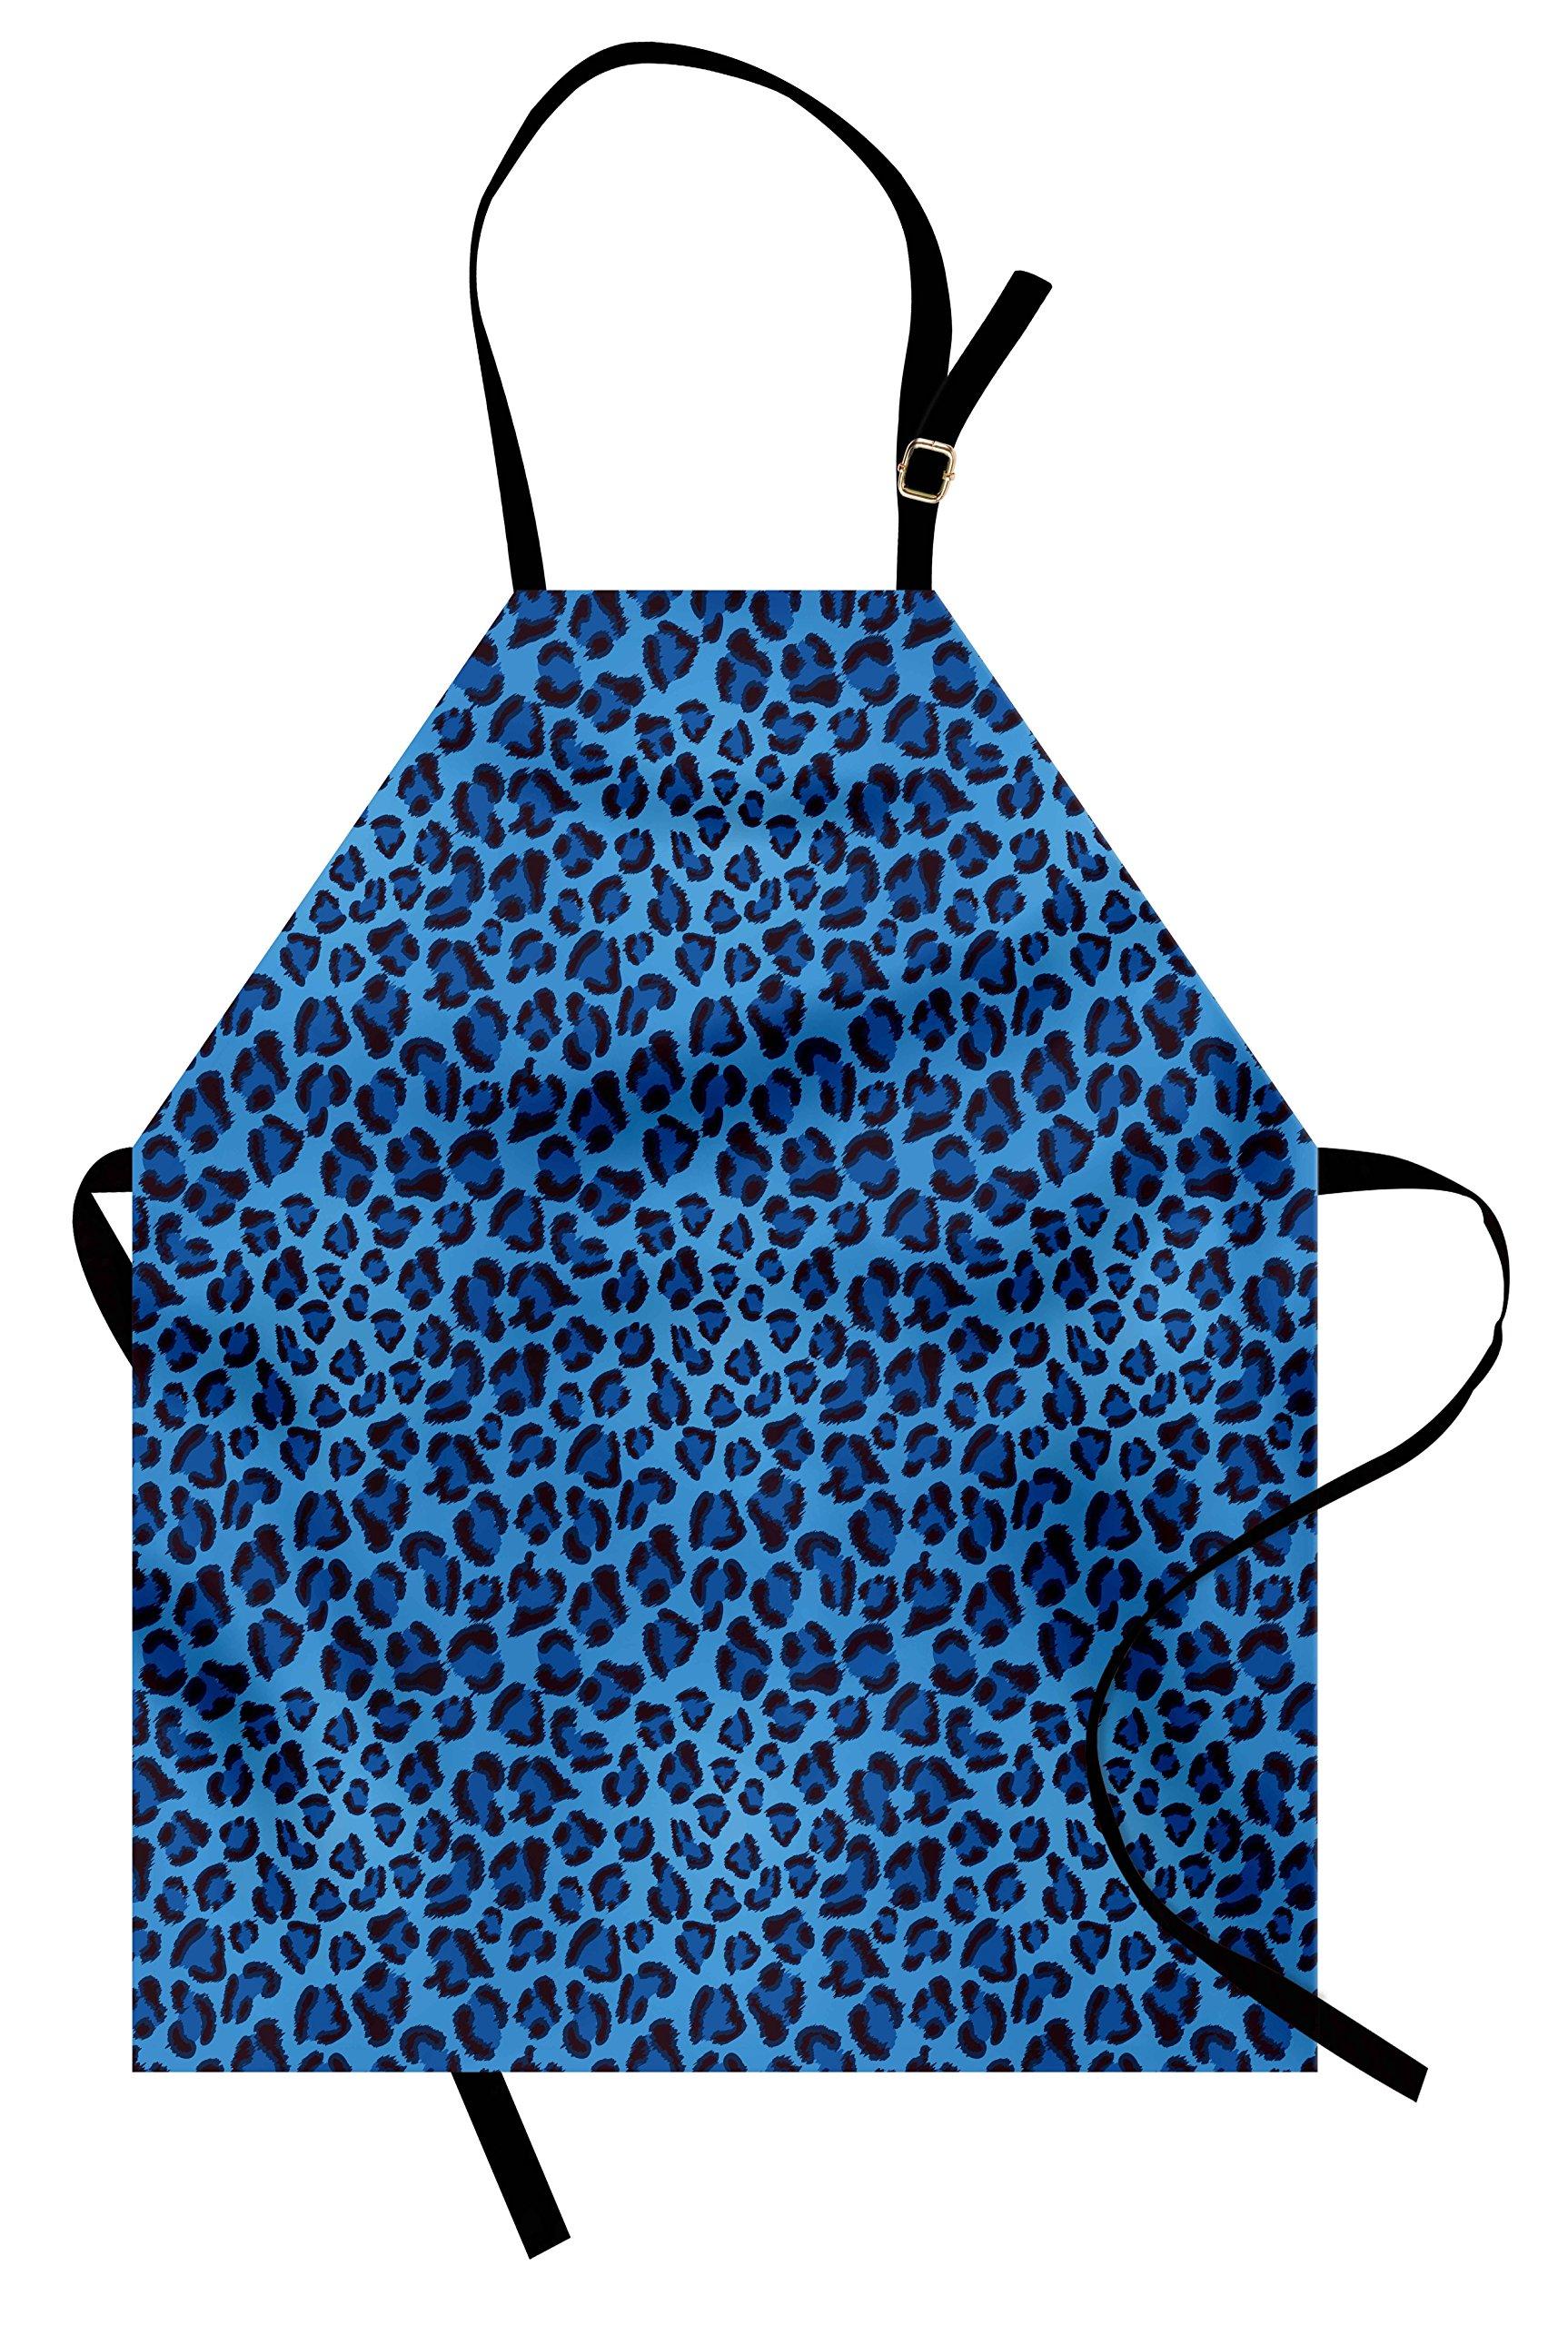 Lunarable Animal Print Decor Apron, Leopard Animal Print Stylized Artistic Design Creative Contemporary Artwork, Unisex Kitchen Bib Apron with Adjustable Neck for Cooking Baking Gardening, Blue